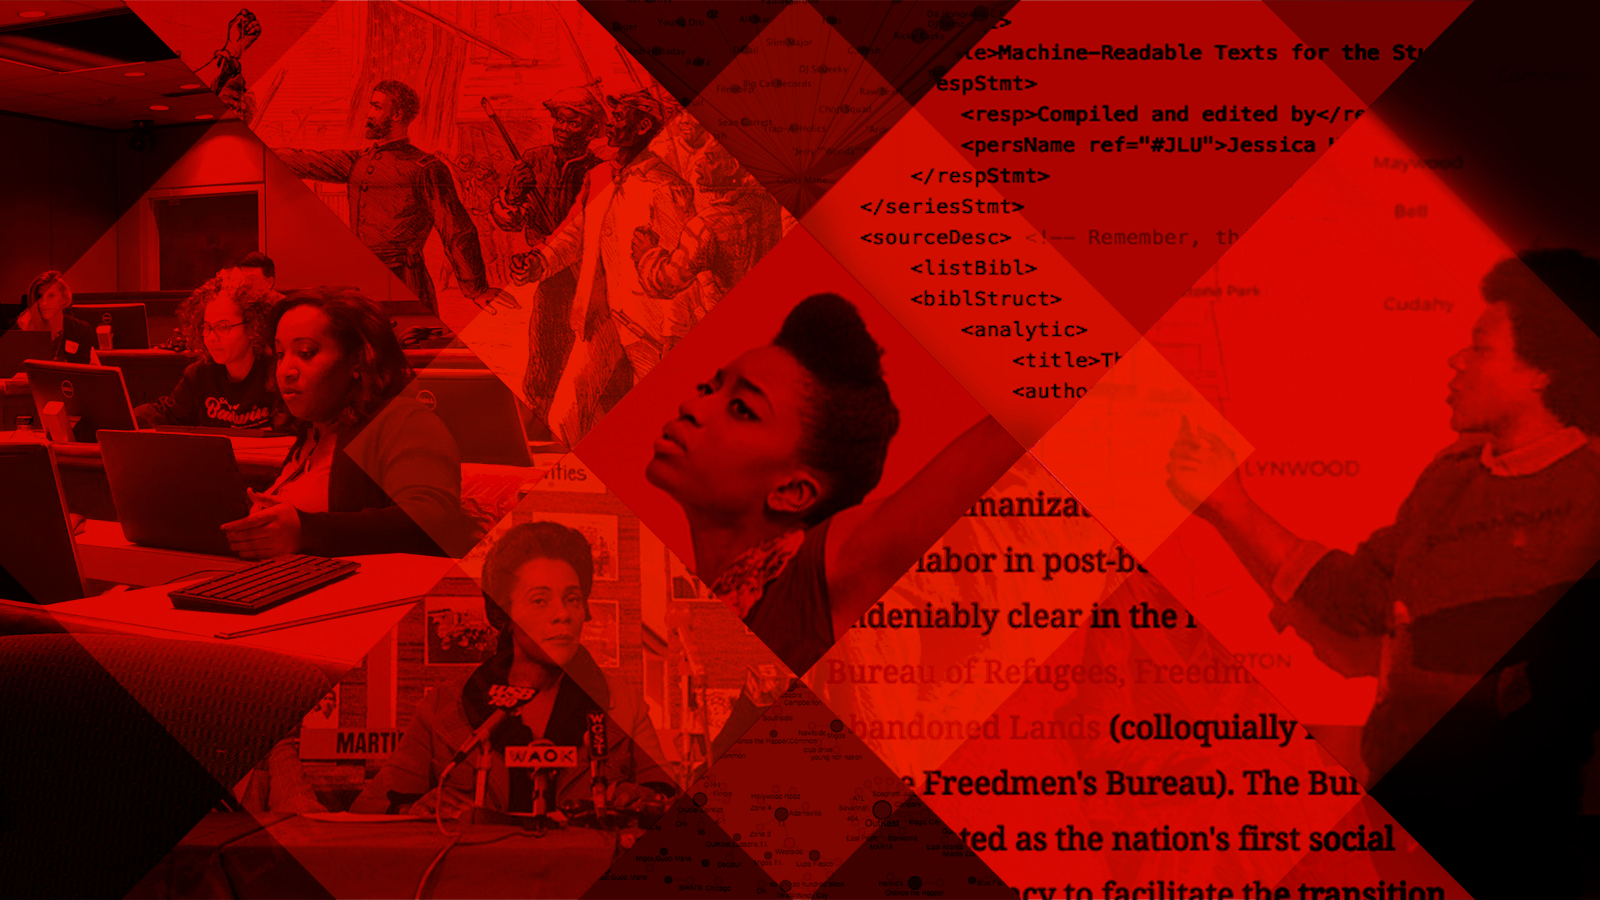 Geometric collage in red and black featuring images of important people in African American history and culture